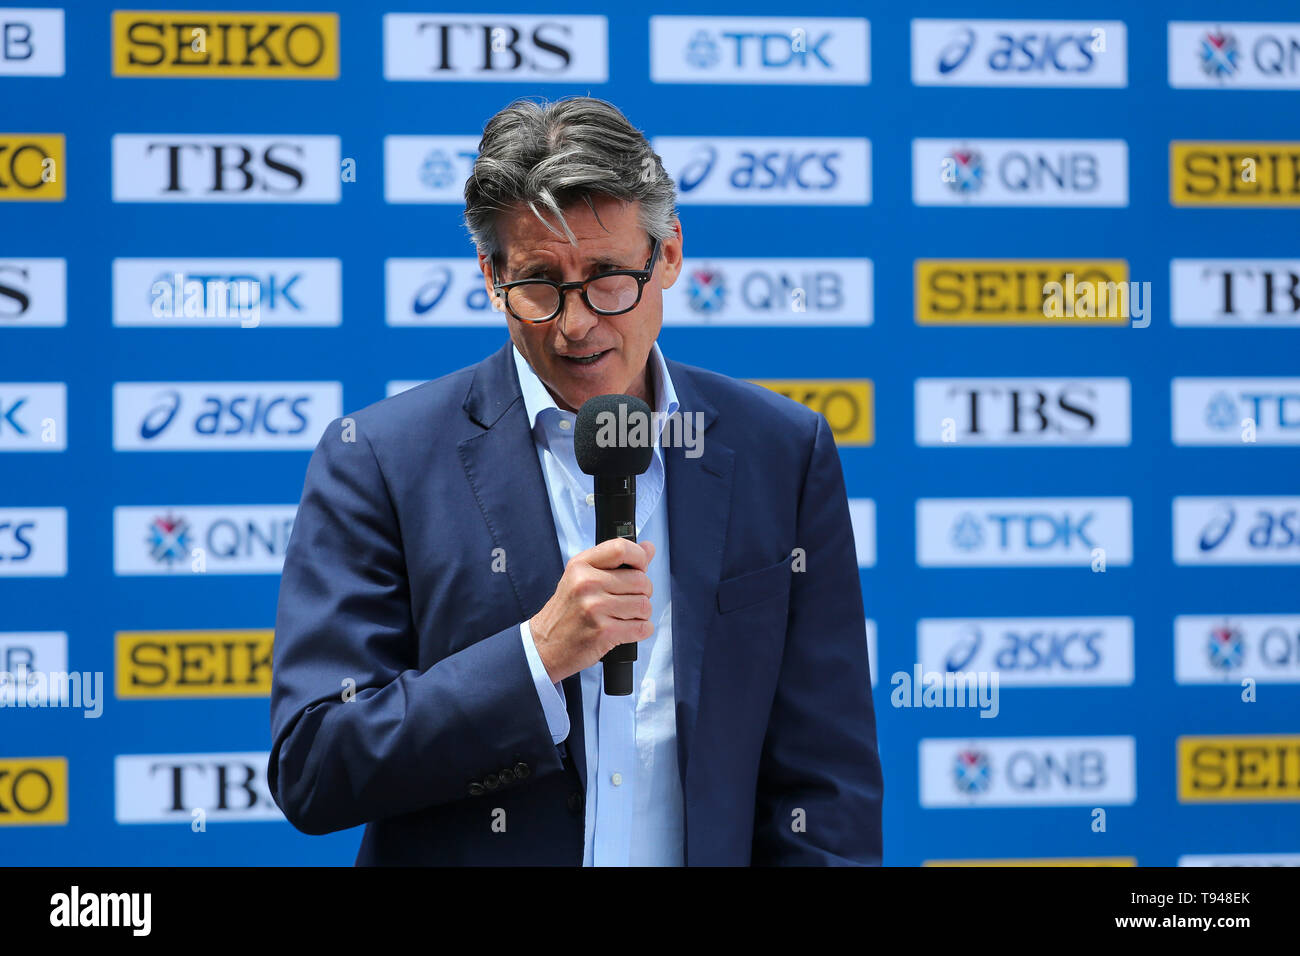 YOKOHAMA, JAPAN - MAY 10: IAAF President, Sebastian Coe, during the official press conference of the 2019 IAAF World Relay Championships at the Nissan Stadium on May 10, 2019 in Yokohama, Japan. (Photo by Roger Sedres for the IAAF) - Stock Image